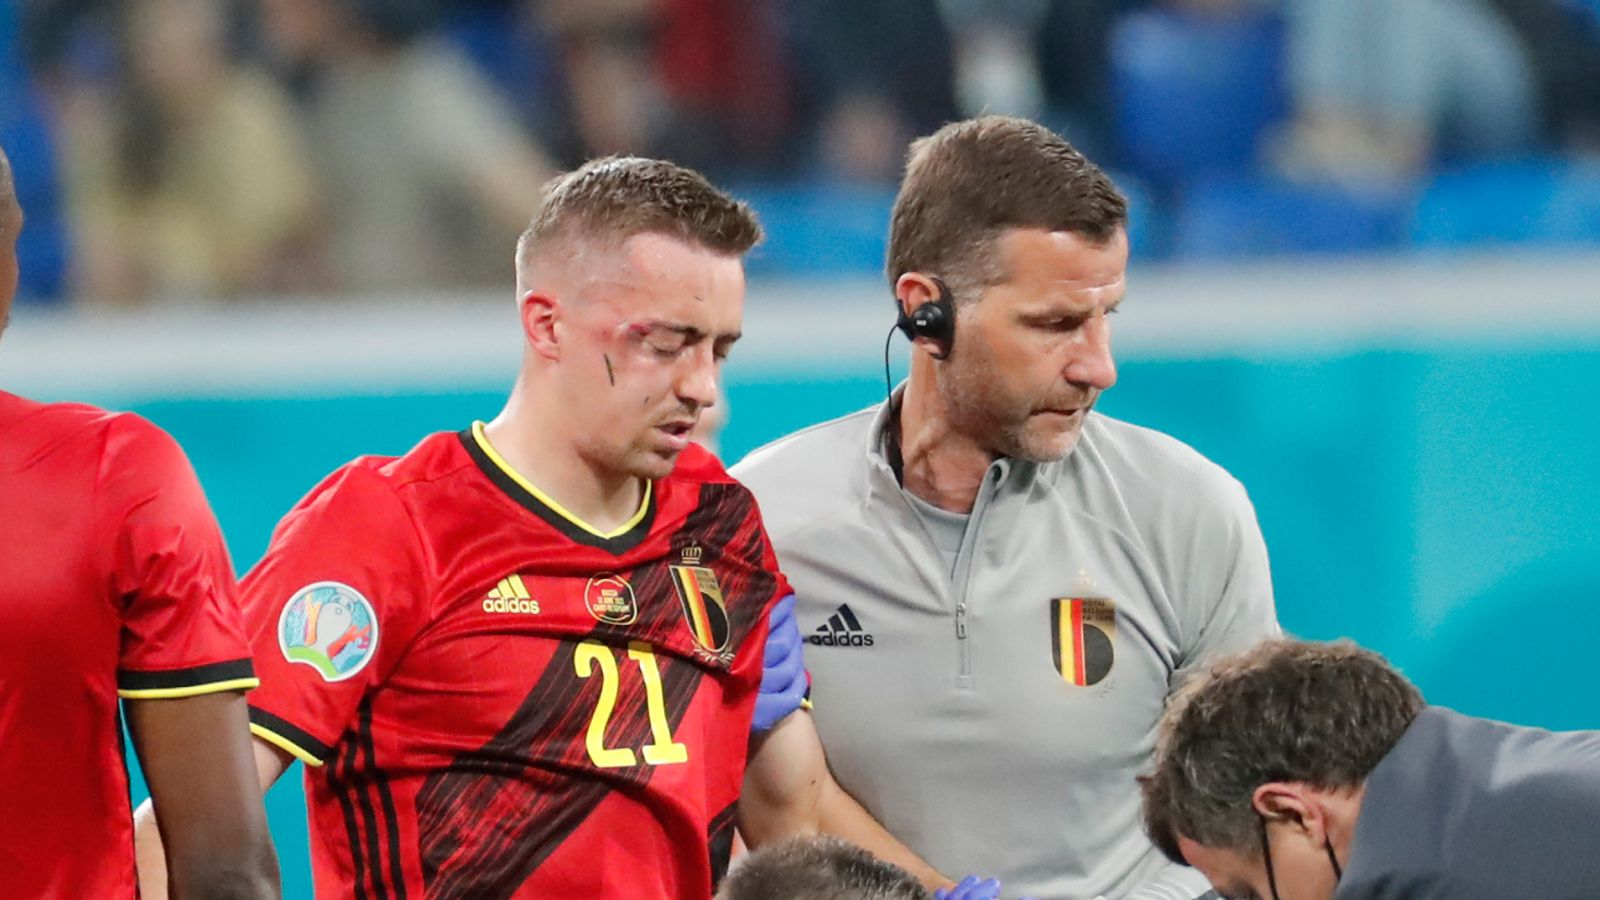 Roberto Martinez confirms Timothy Castagne has been ruled out of the rest of the tournament. Very unfortunate news - Bóng Đá